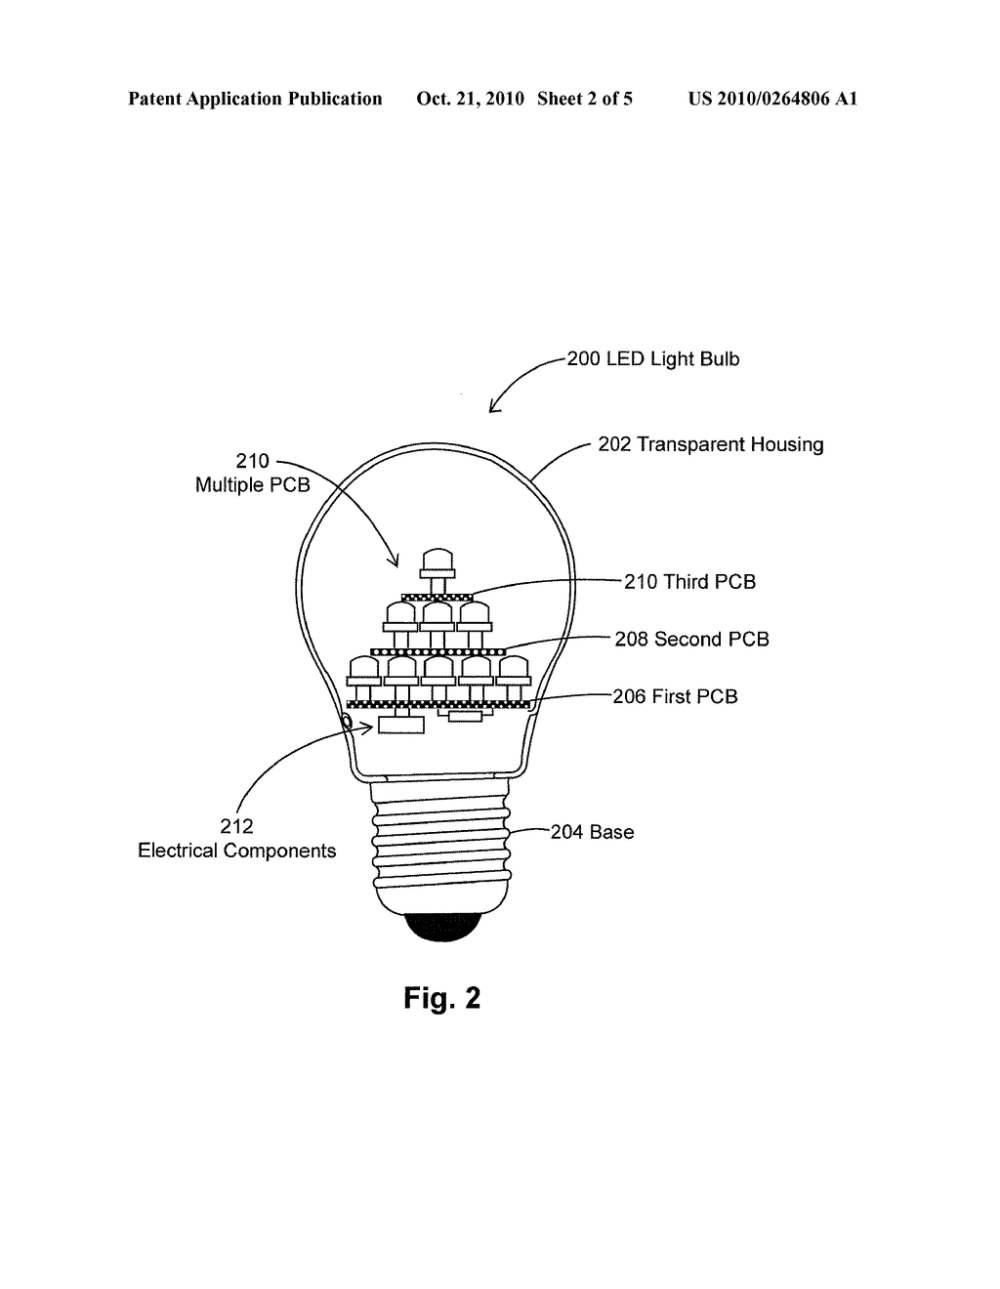 medium resolution of led light bulbs in pyramidal structure for efficient heat dissipation diagram schematic and image 03